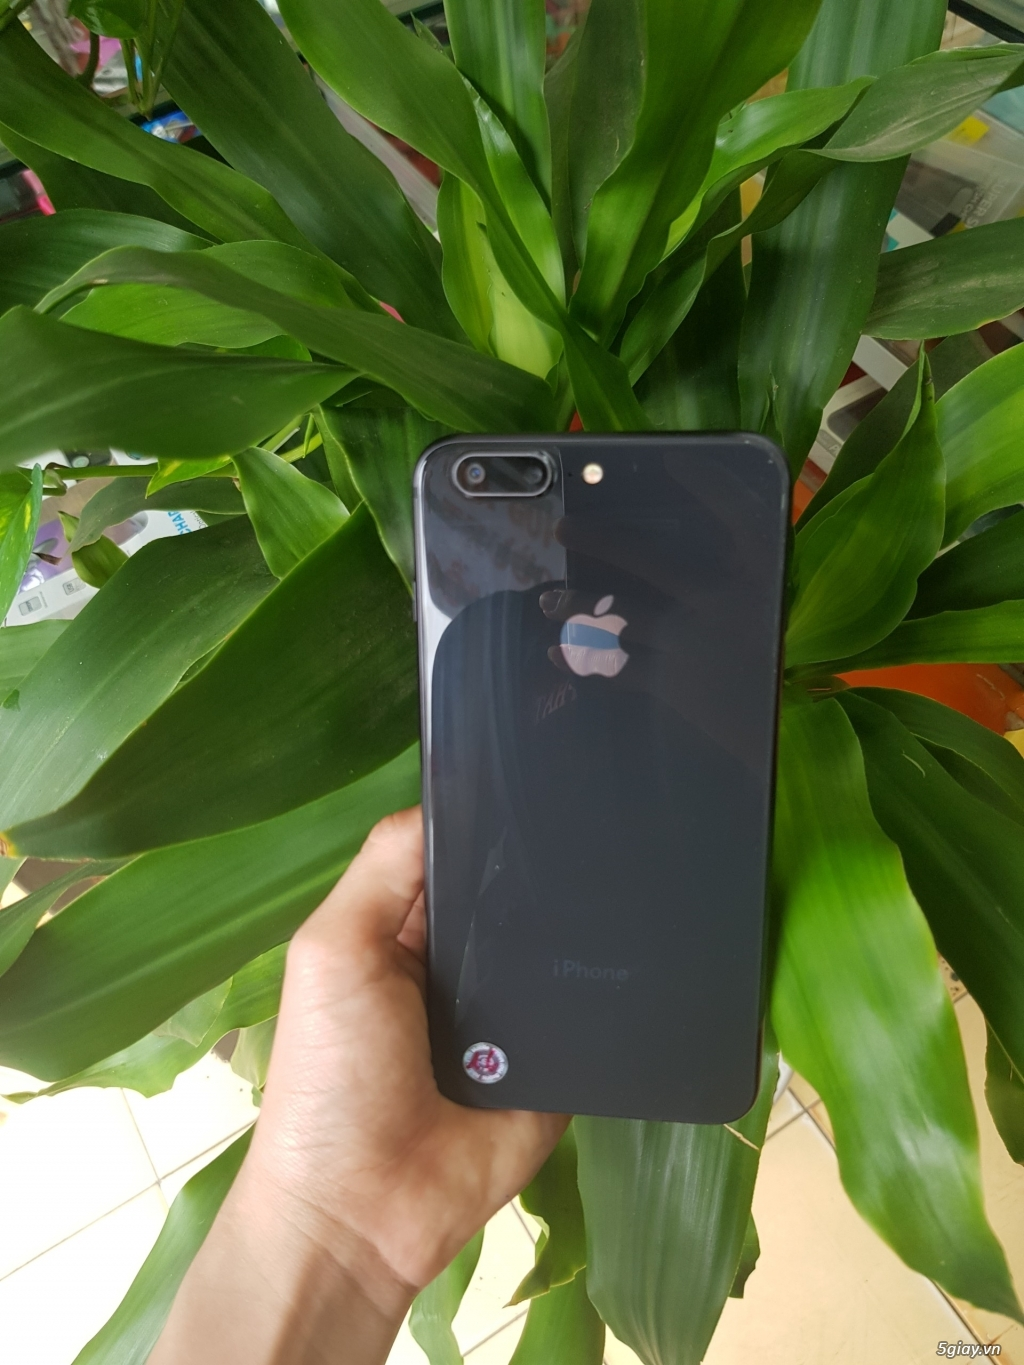 iphone 6 plus 16gb lên vỏ 8plud - 3